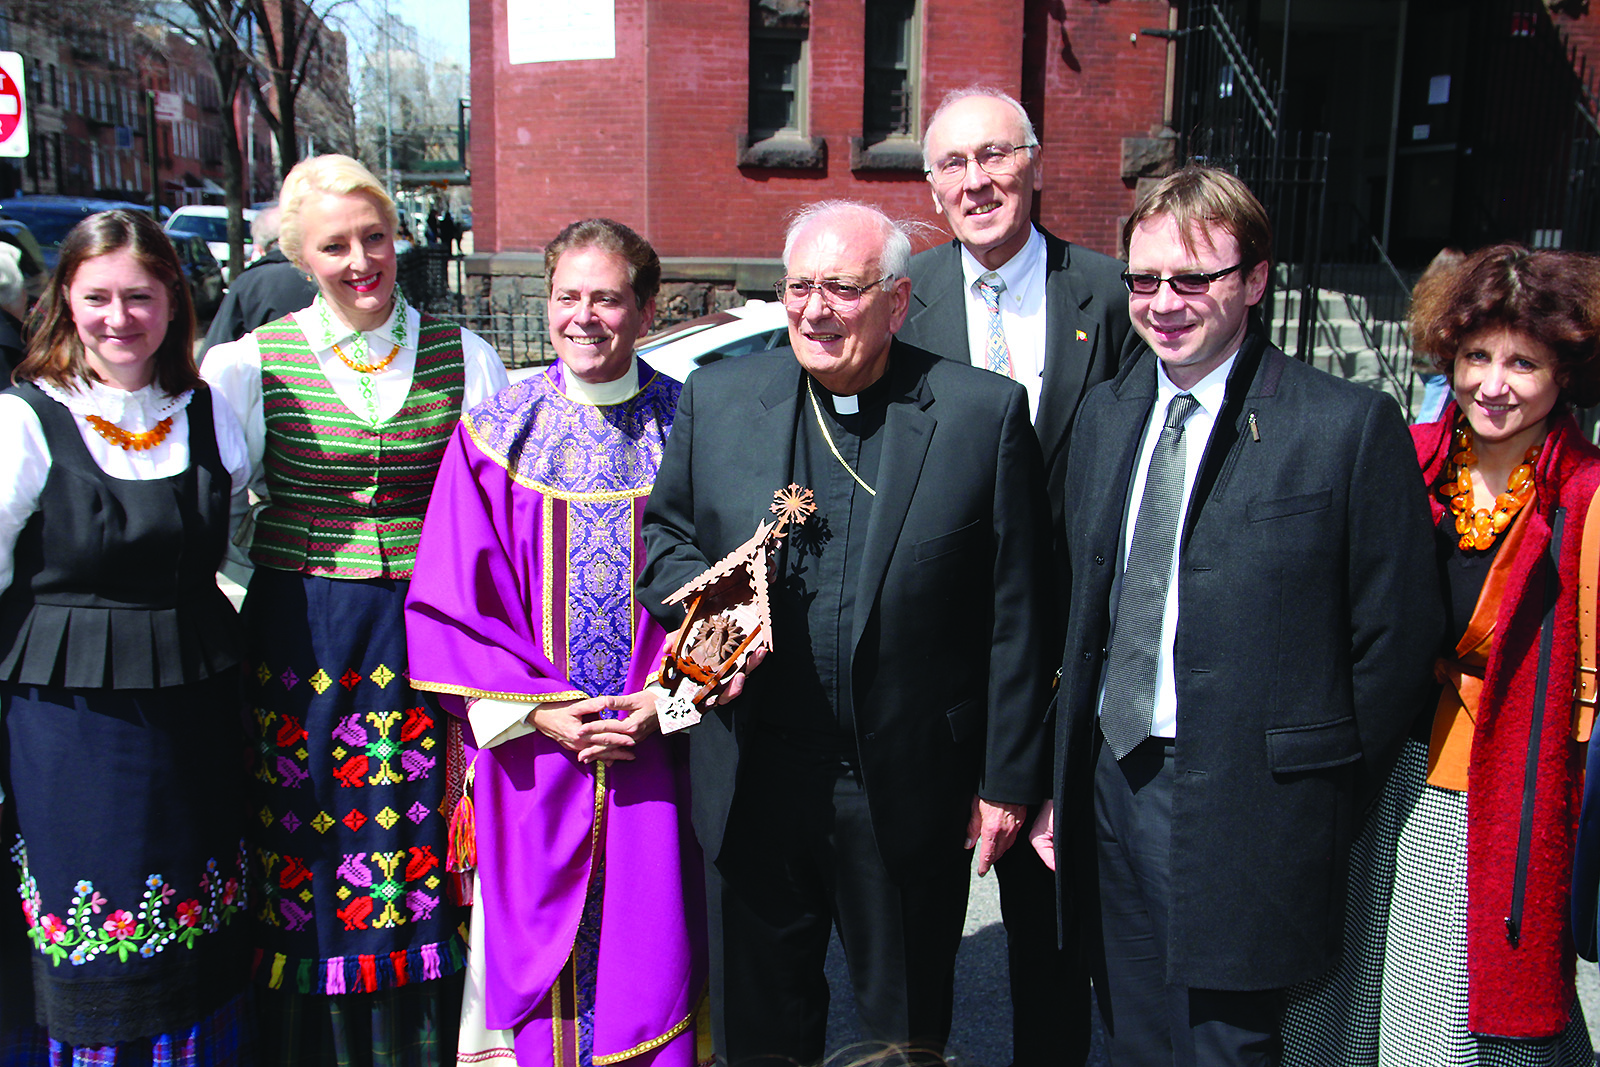 Lithuanians present a gift (Chapel of the Gates of Dawn) to Bishop Nicholas DiMarzio of Brooklyn. From left to right: Gitana Skripkaitė, Acting Chairman of the Consulate General of the Republic of Lithuania in New York; Rasa Sprindys, Chairman of the Lithuanian Community of New York; Msgr. Jamie Gigantiello, Pastor of Annunciation parish; Bishop Nicholas DiMarzio of Brooklyn; Raimundas Šližys;, Rolandas Kriščiūnas, the Ambassador of the Republic of Lithuania to the US; and Ambassador Audra Plepytė, Permanent Representative of Lithuania to the UN.